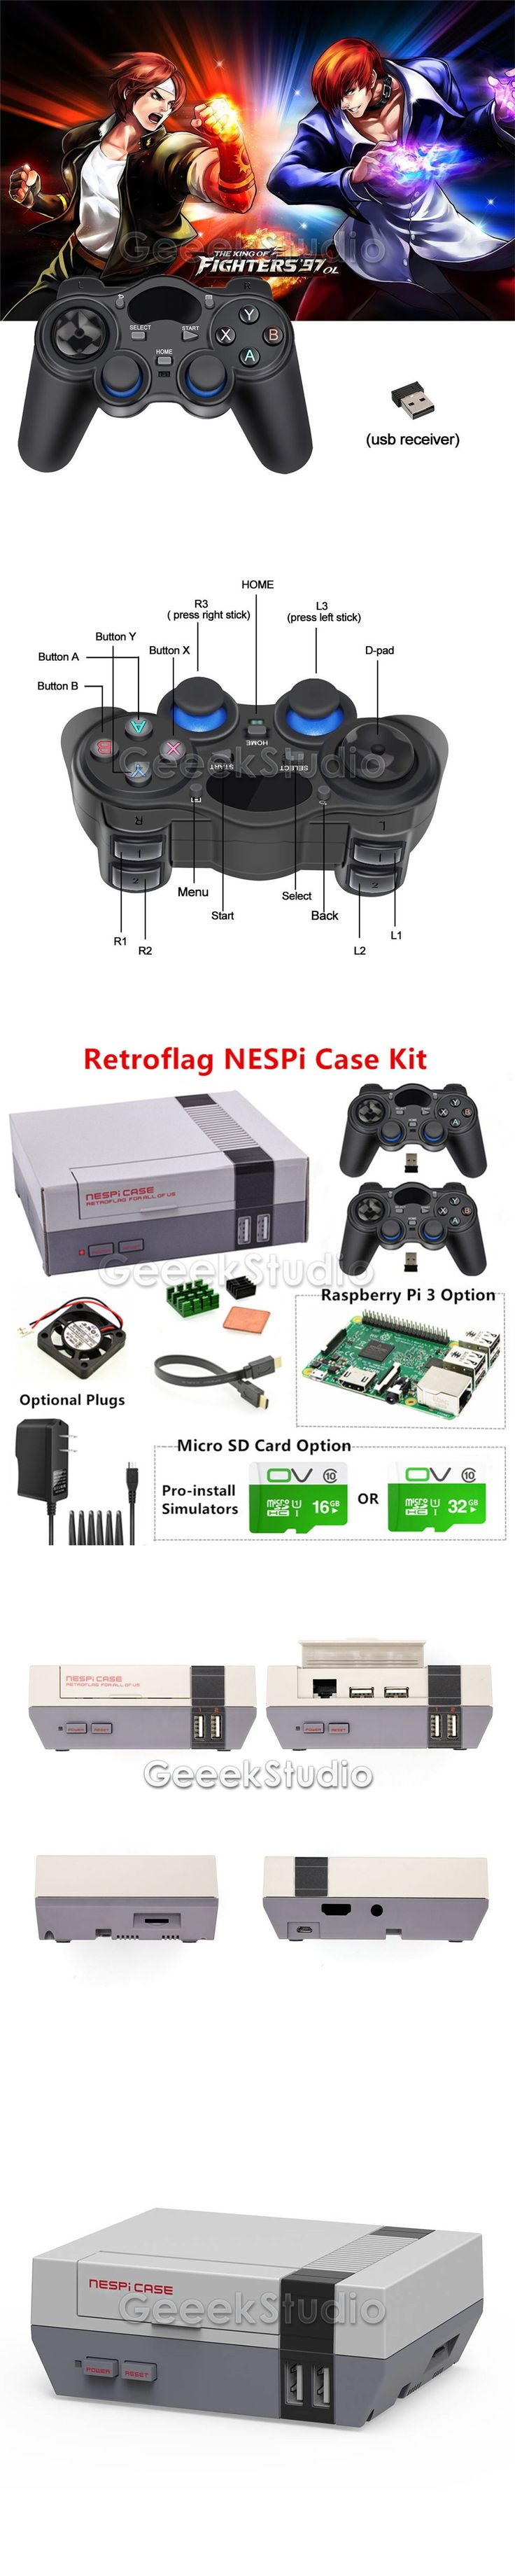 NESPi Case Retroflag Kit with Fan+2 Pcs 2.4GHz Wireless Gamepads+Optional 16G/32G Micro SD Card+Optional Raspberry Pi 3 Board